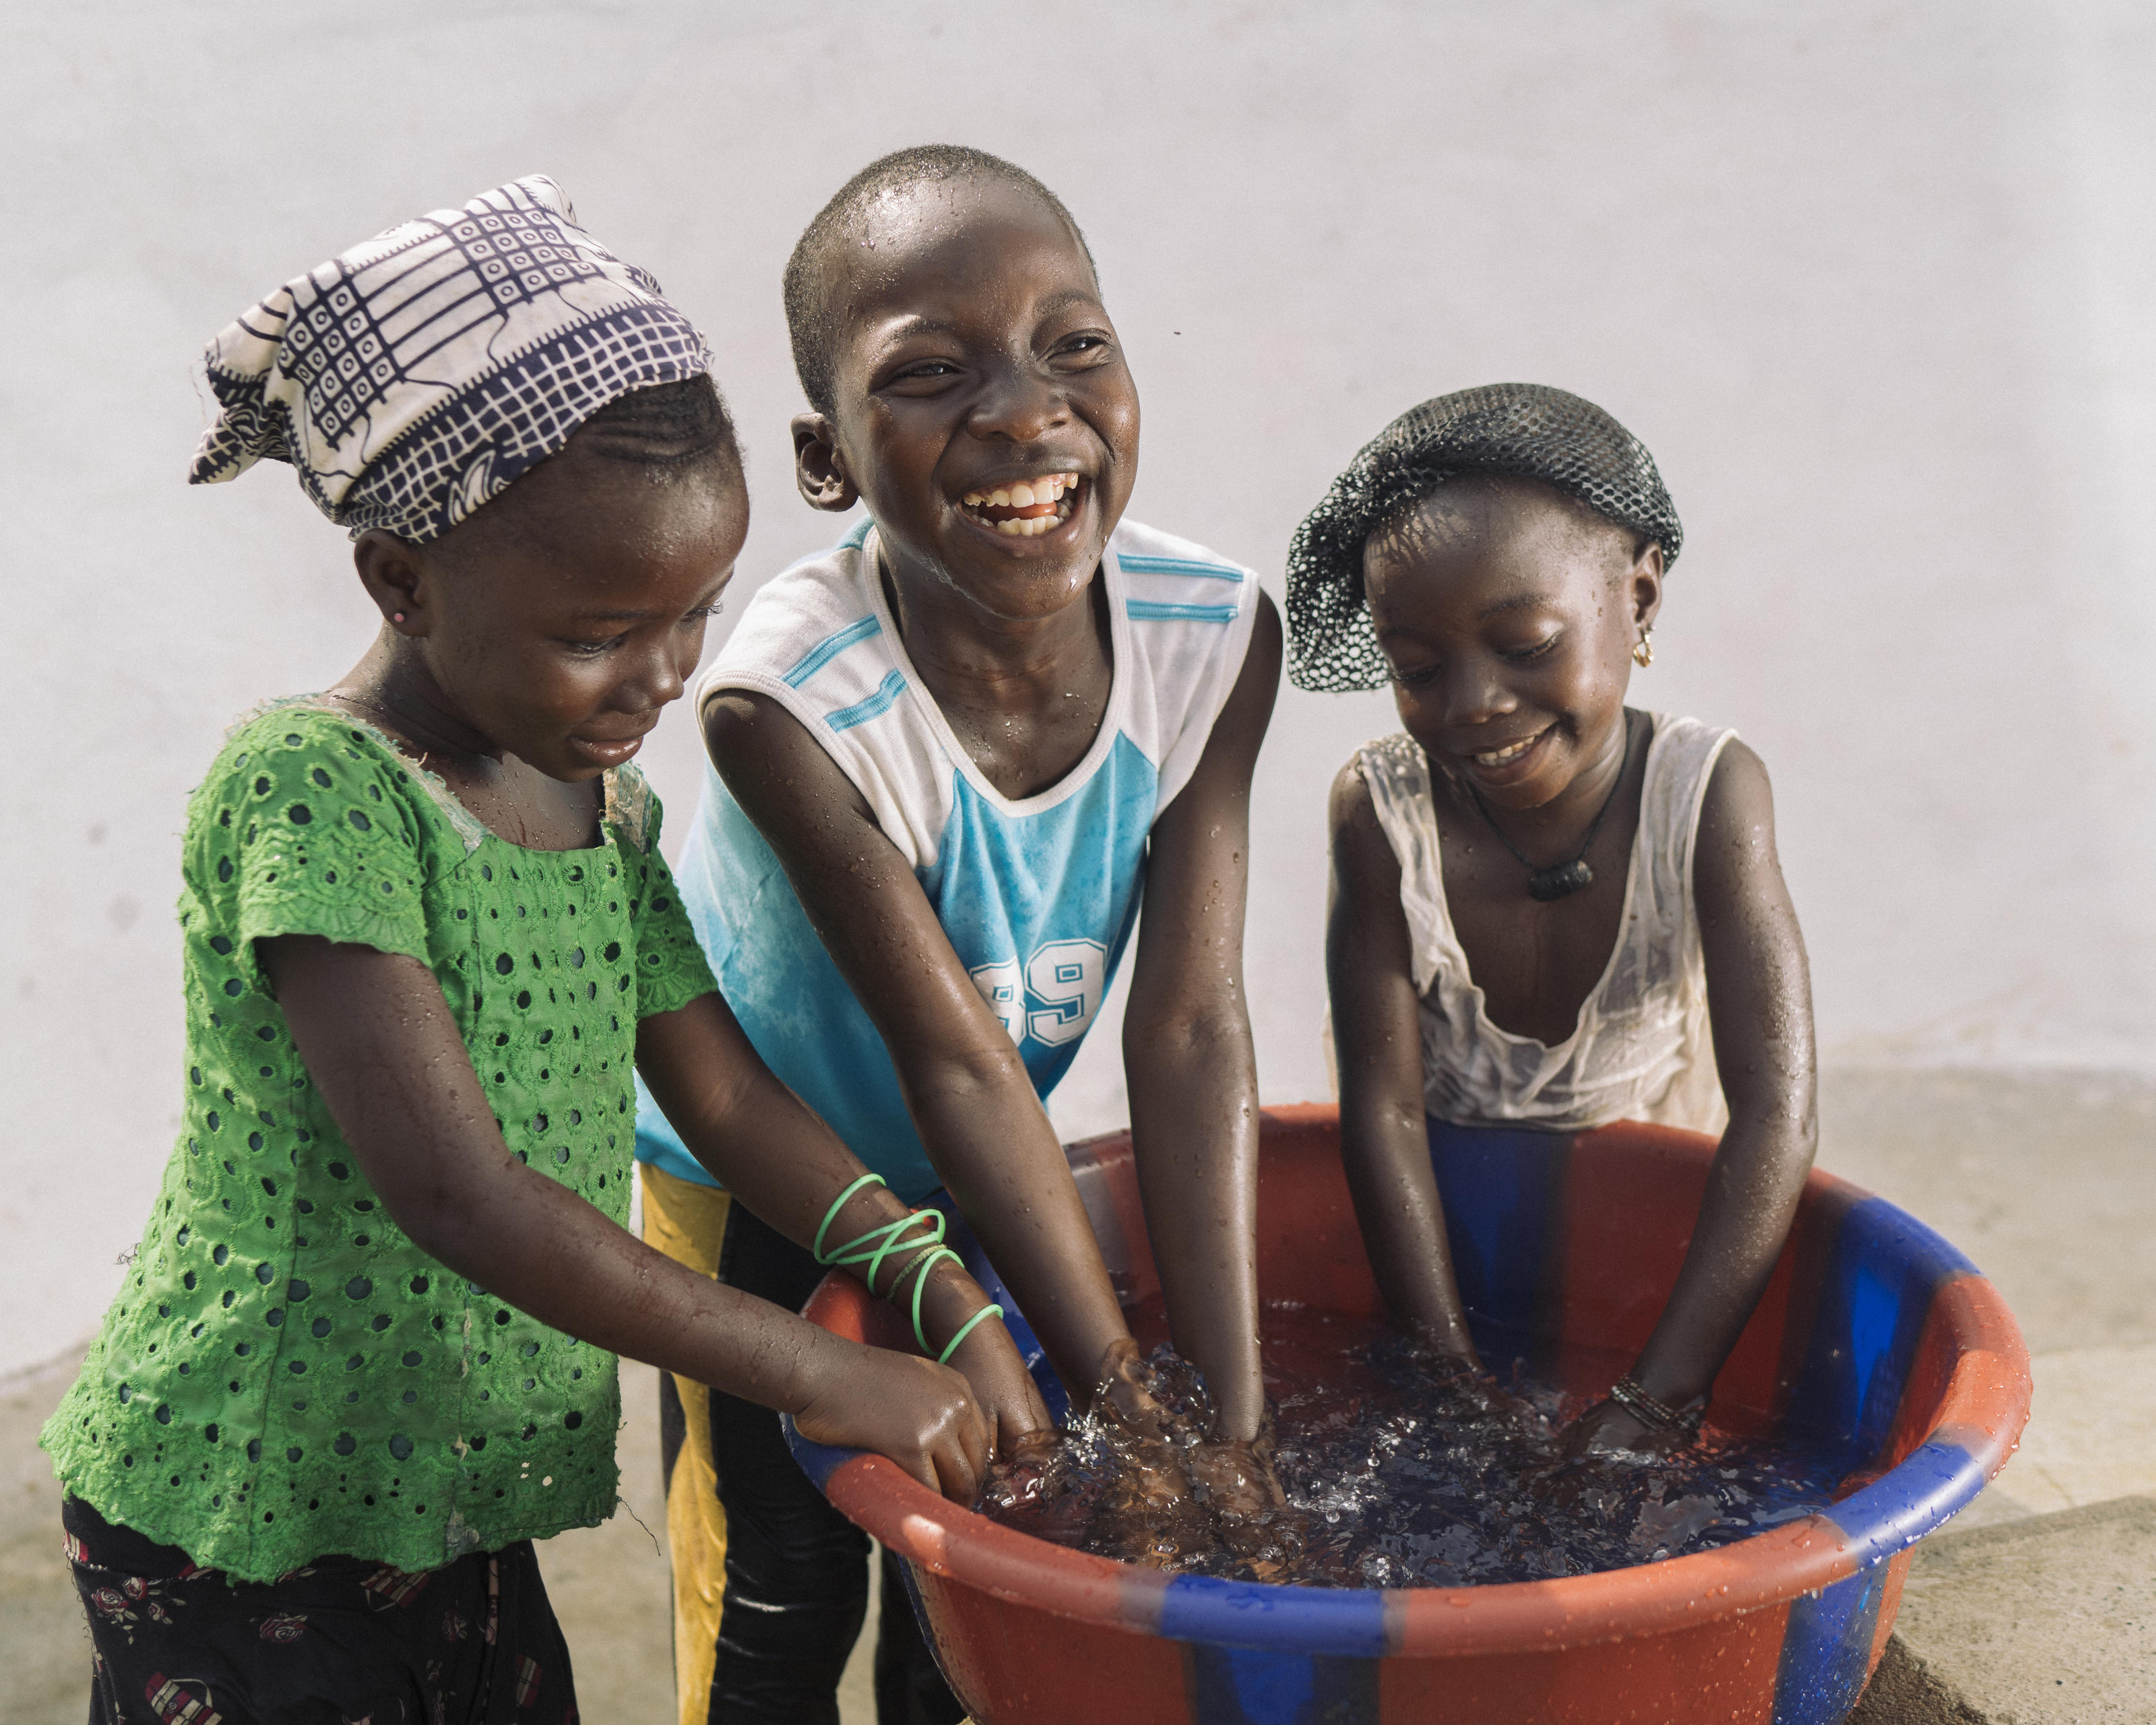 Kokoyeh, 8, Nancy, 6, and Lucy, 5, play with the clean water as their way of celebrating the new water pump, in Tombohuaun, Kailahun District, Sierra Leone, January 2018.